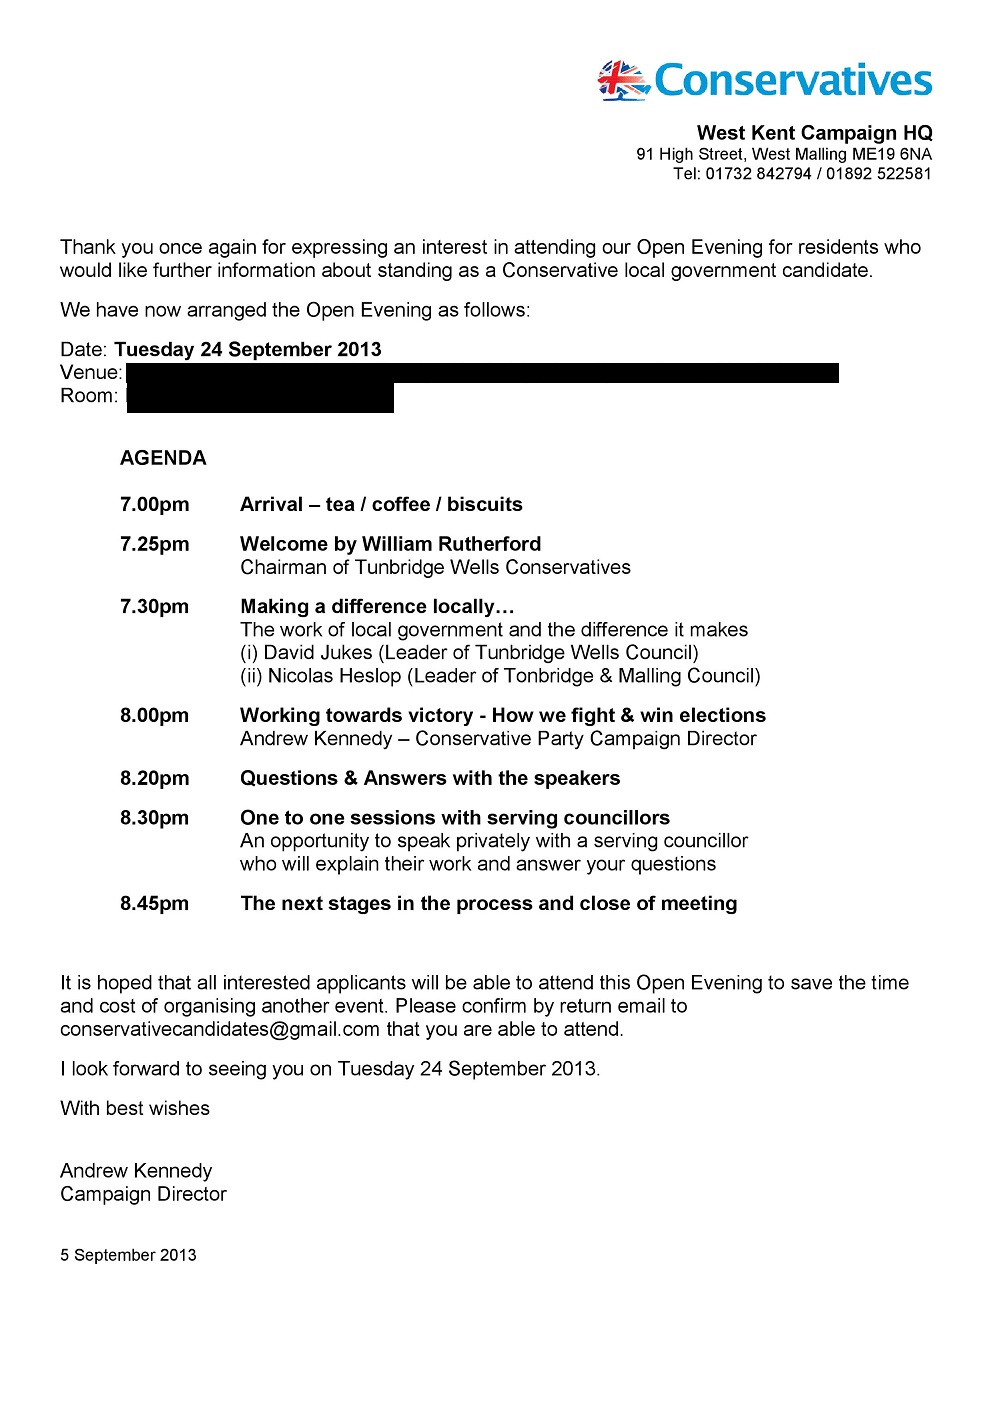 Invitation letter sample venue image collections invitation invitation letter sample venue diary of a conservative party agent local government candidate following the open evening applicants who wish stopboris